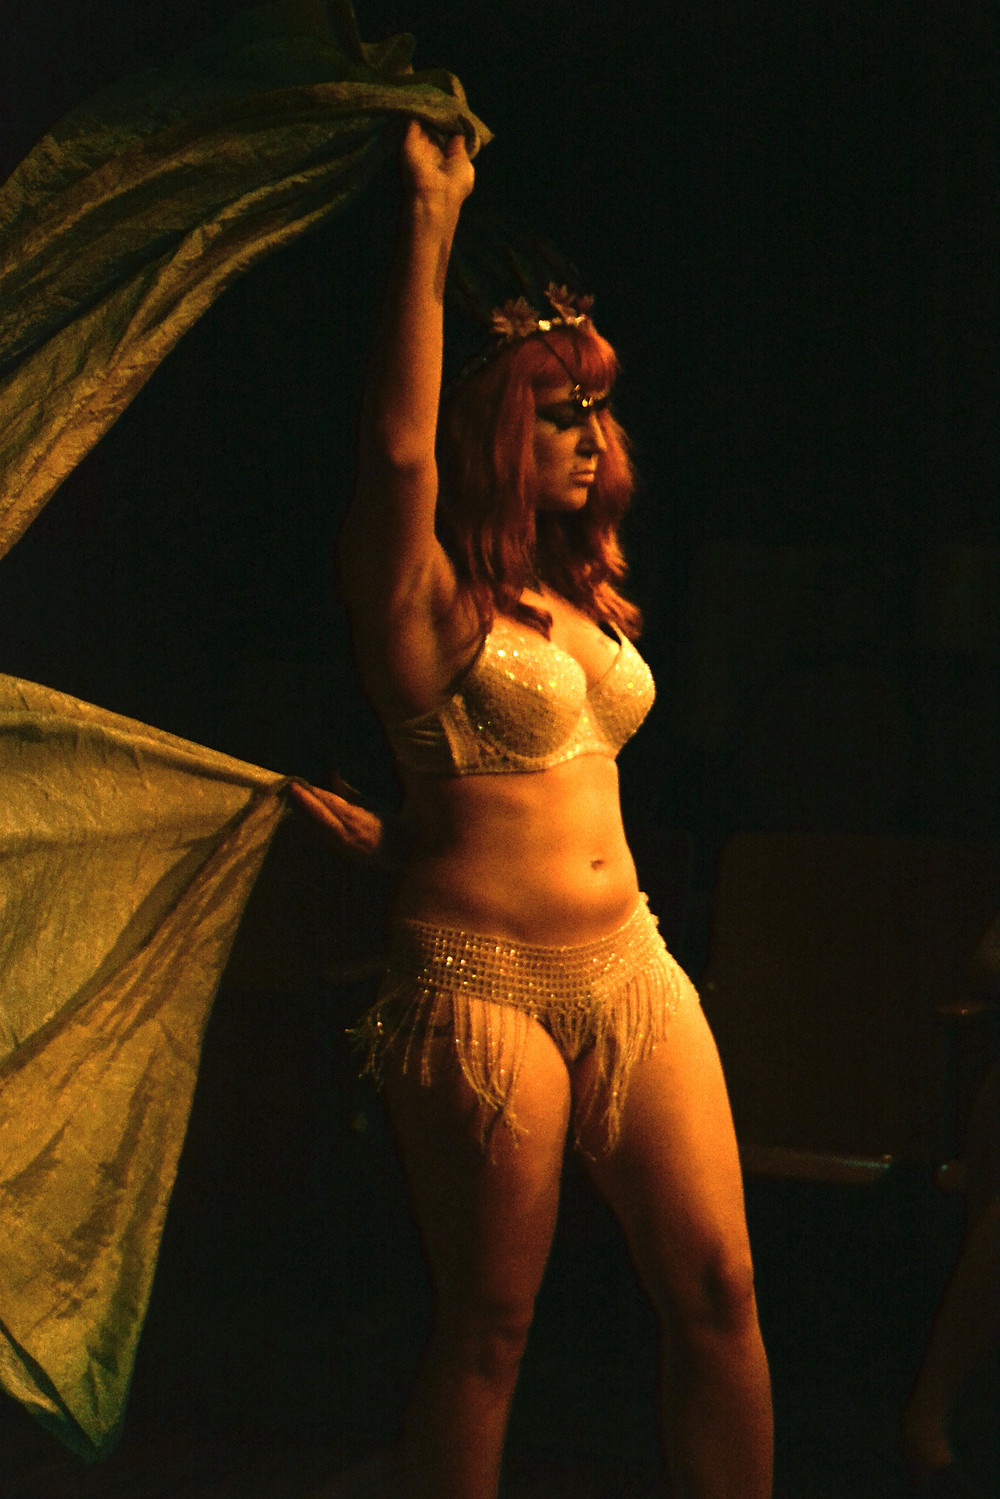 Xena Zeit-Geist as Titania in A Midsummer Night's Wet Dream in New Orleans Fringe Fest